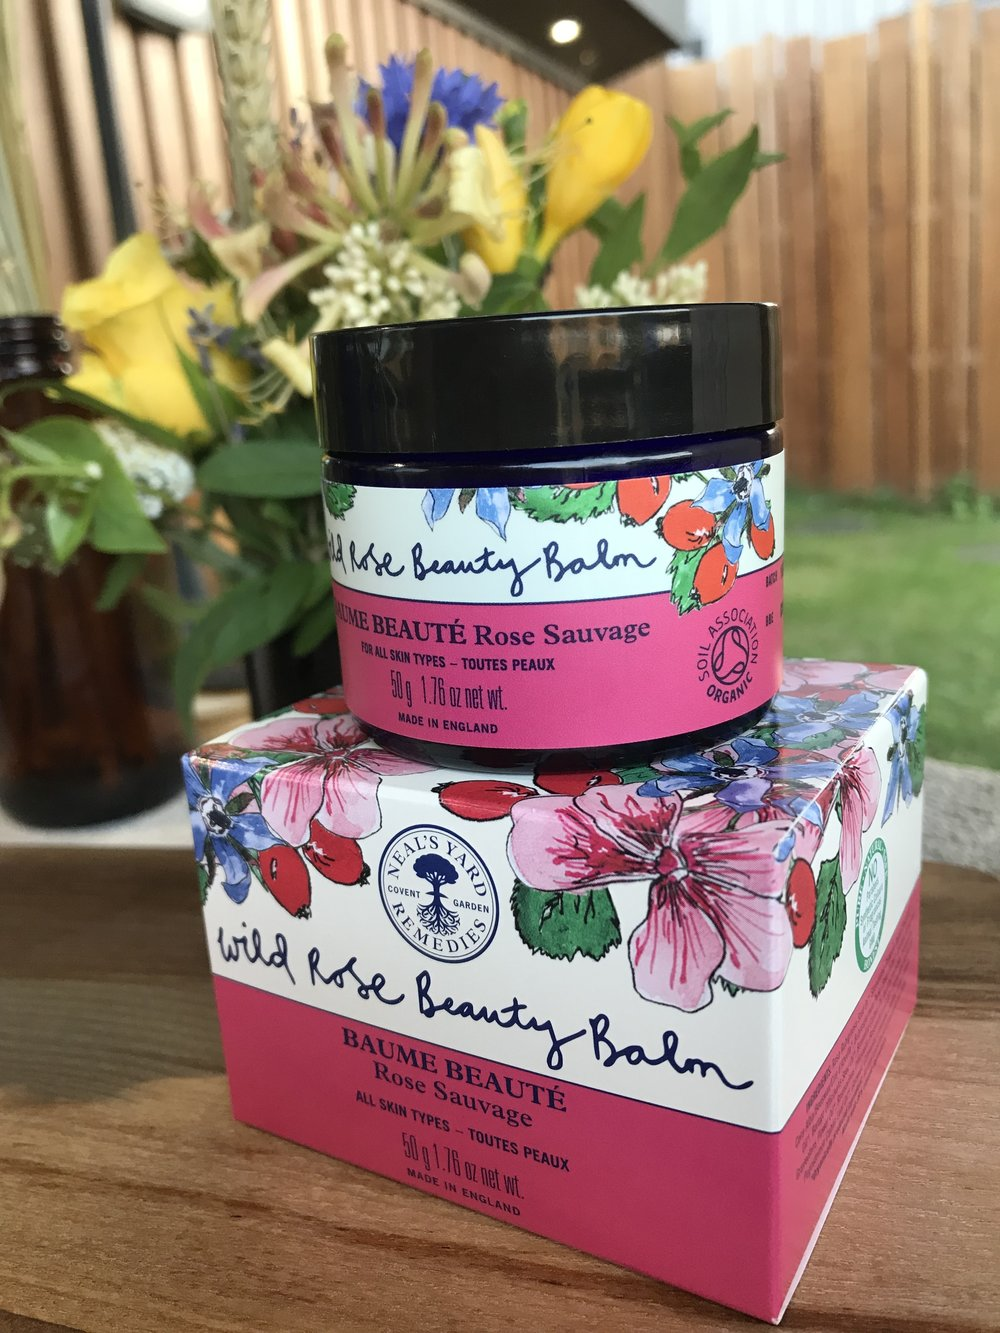 The award winning, multi-use wild rose beauty balm!